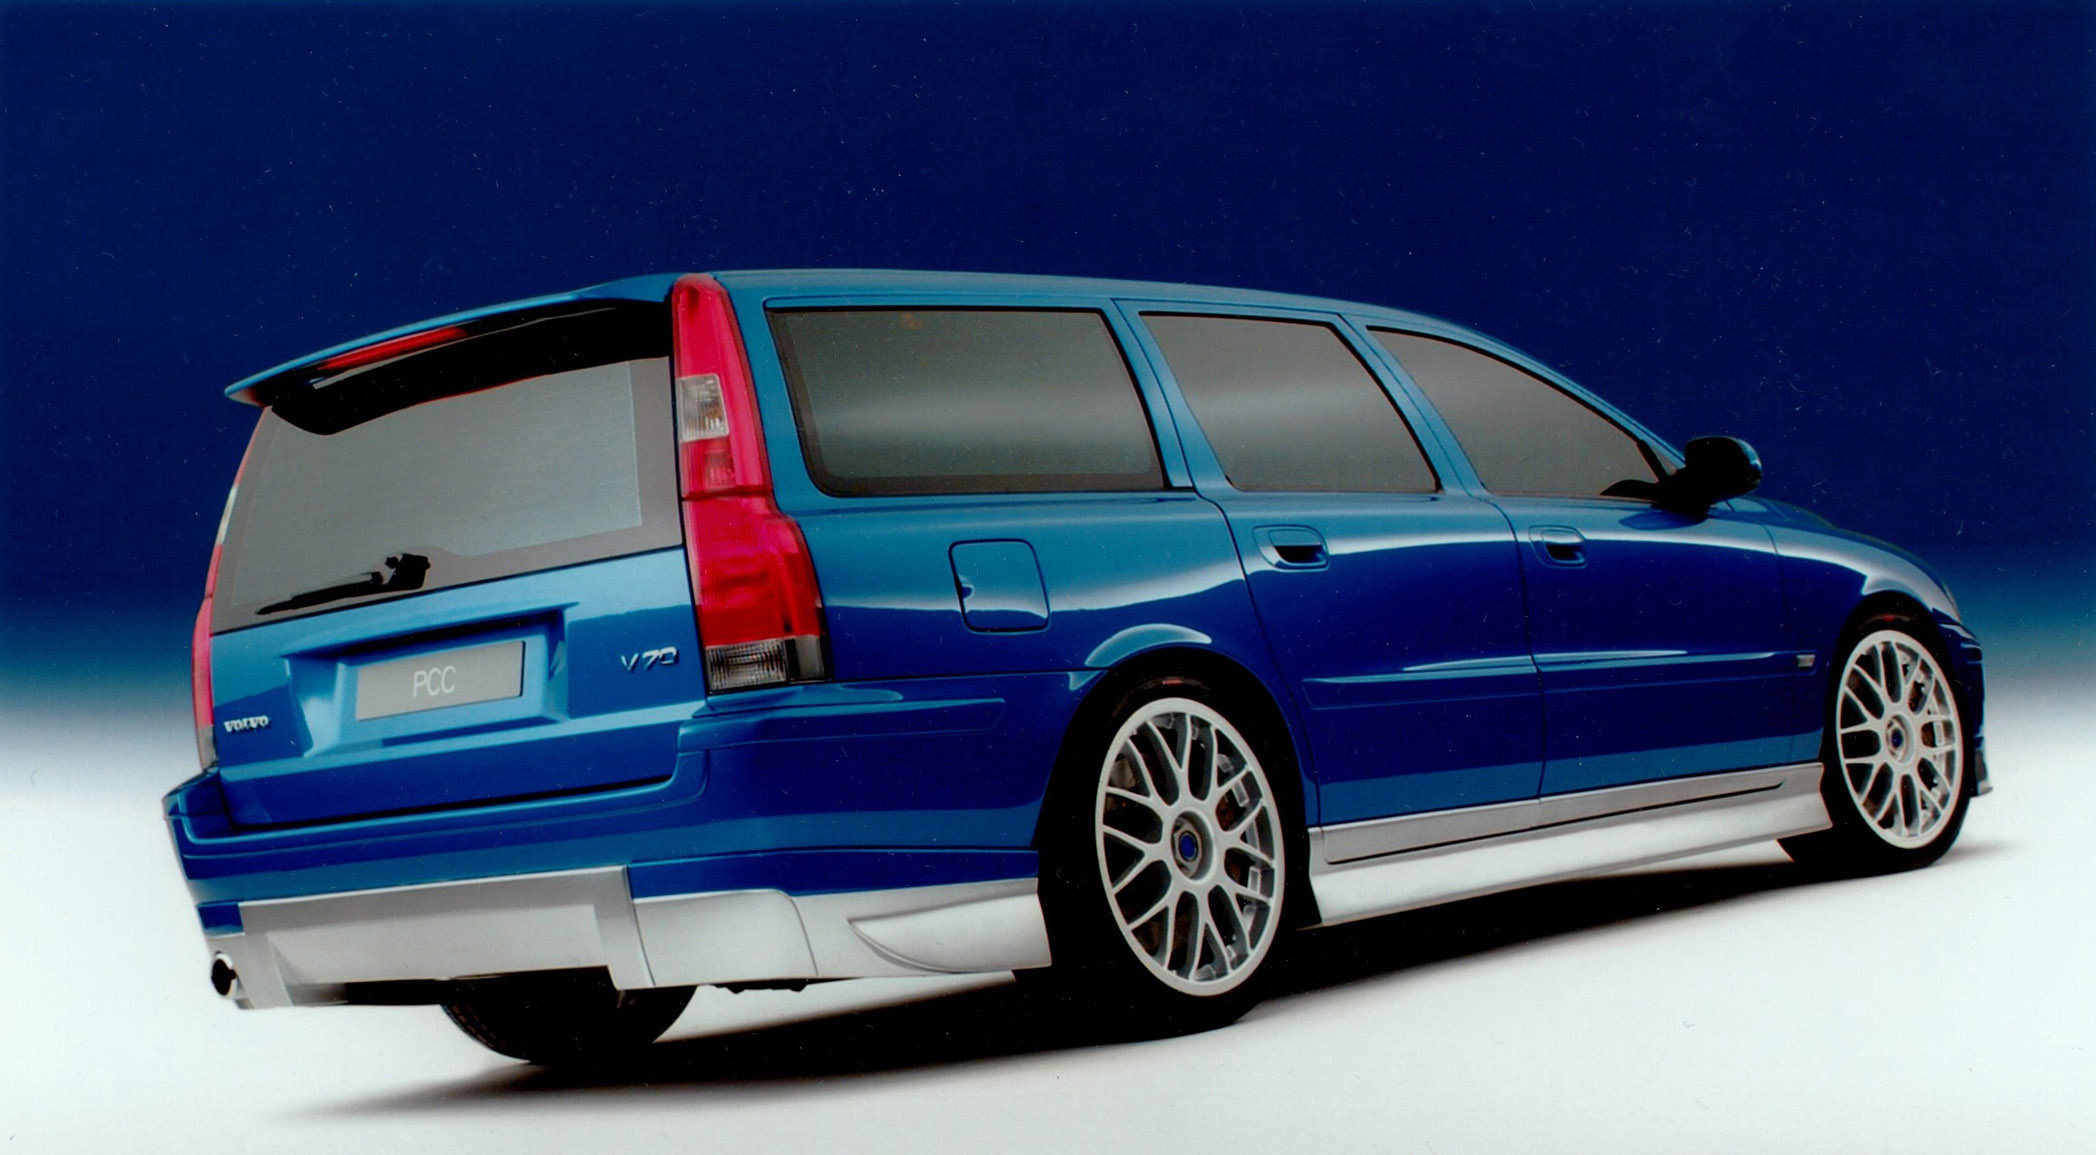 Red Car Wallpaper Download Volvo V70 Concept Car 2001 Picture 35809